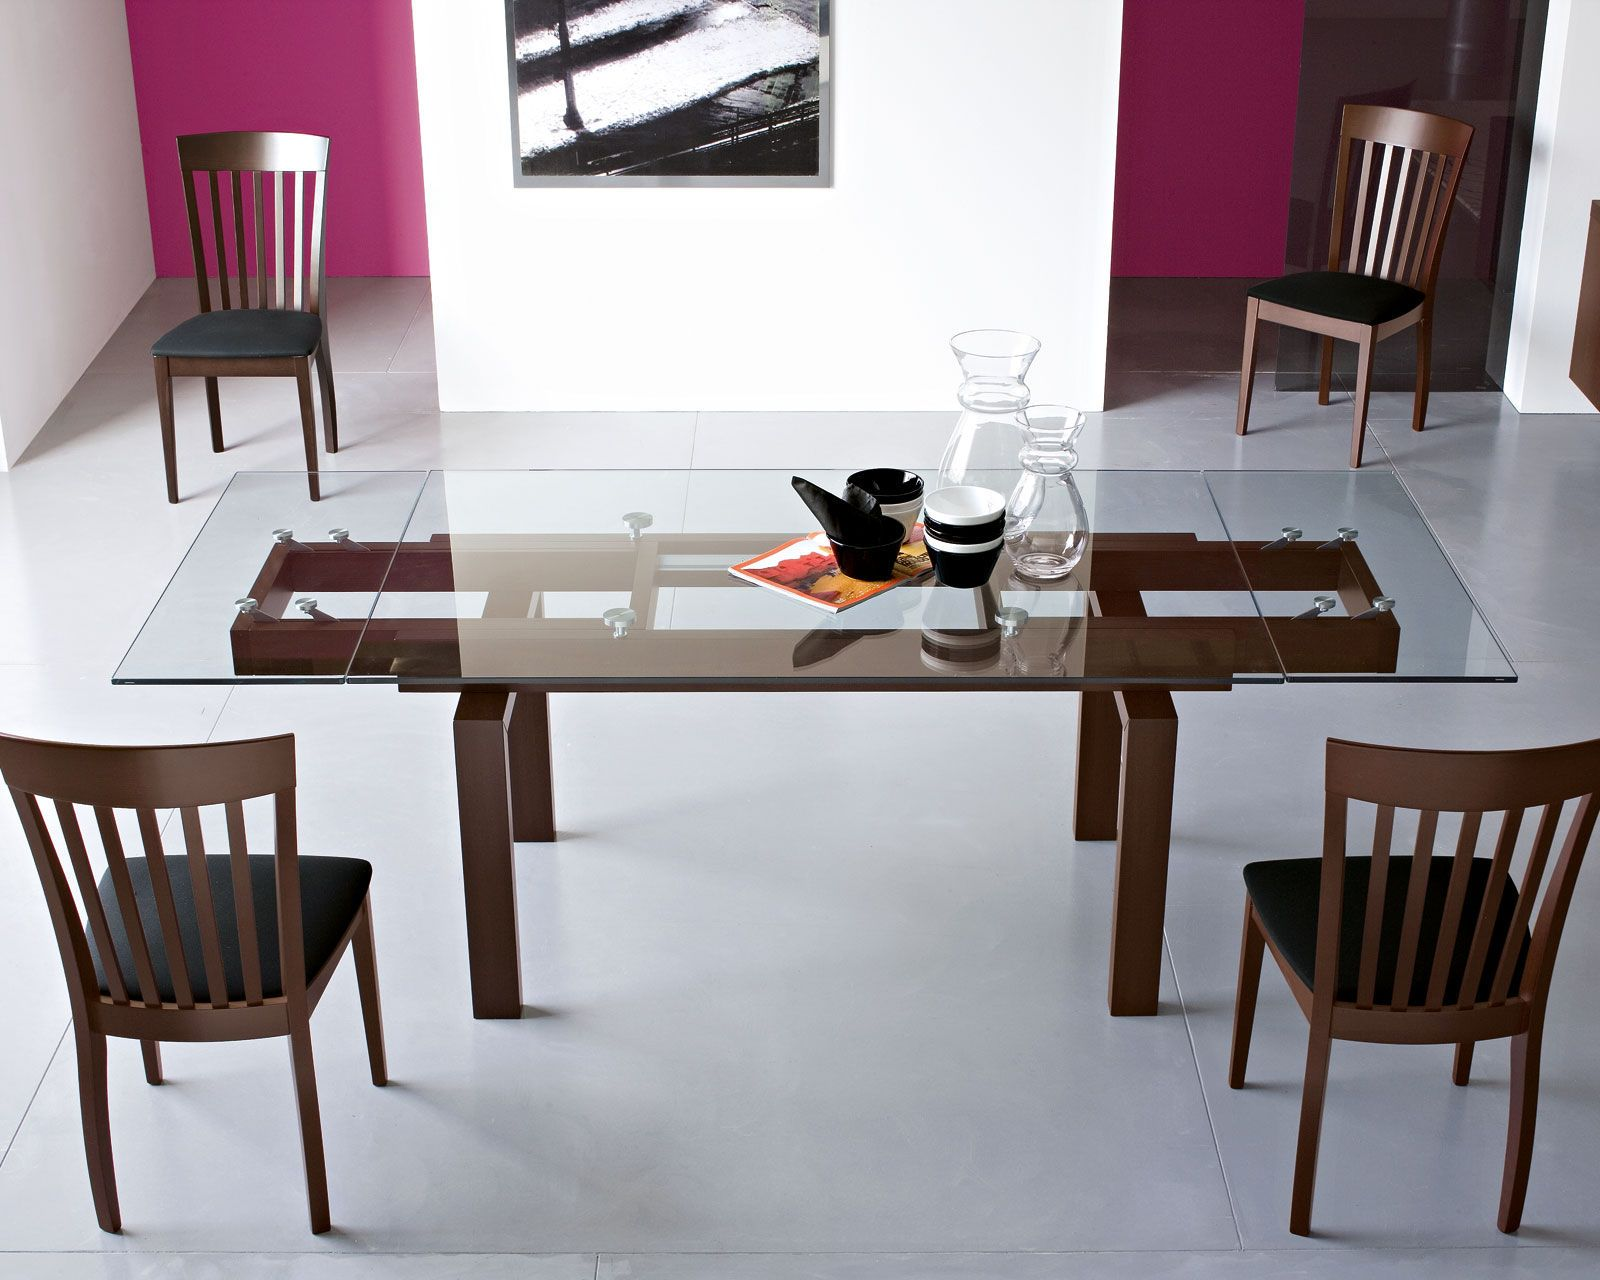 10 person dining table 2 person dining table